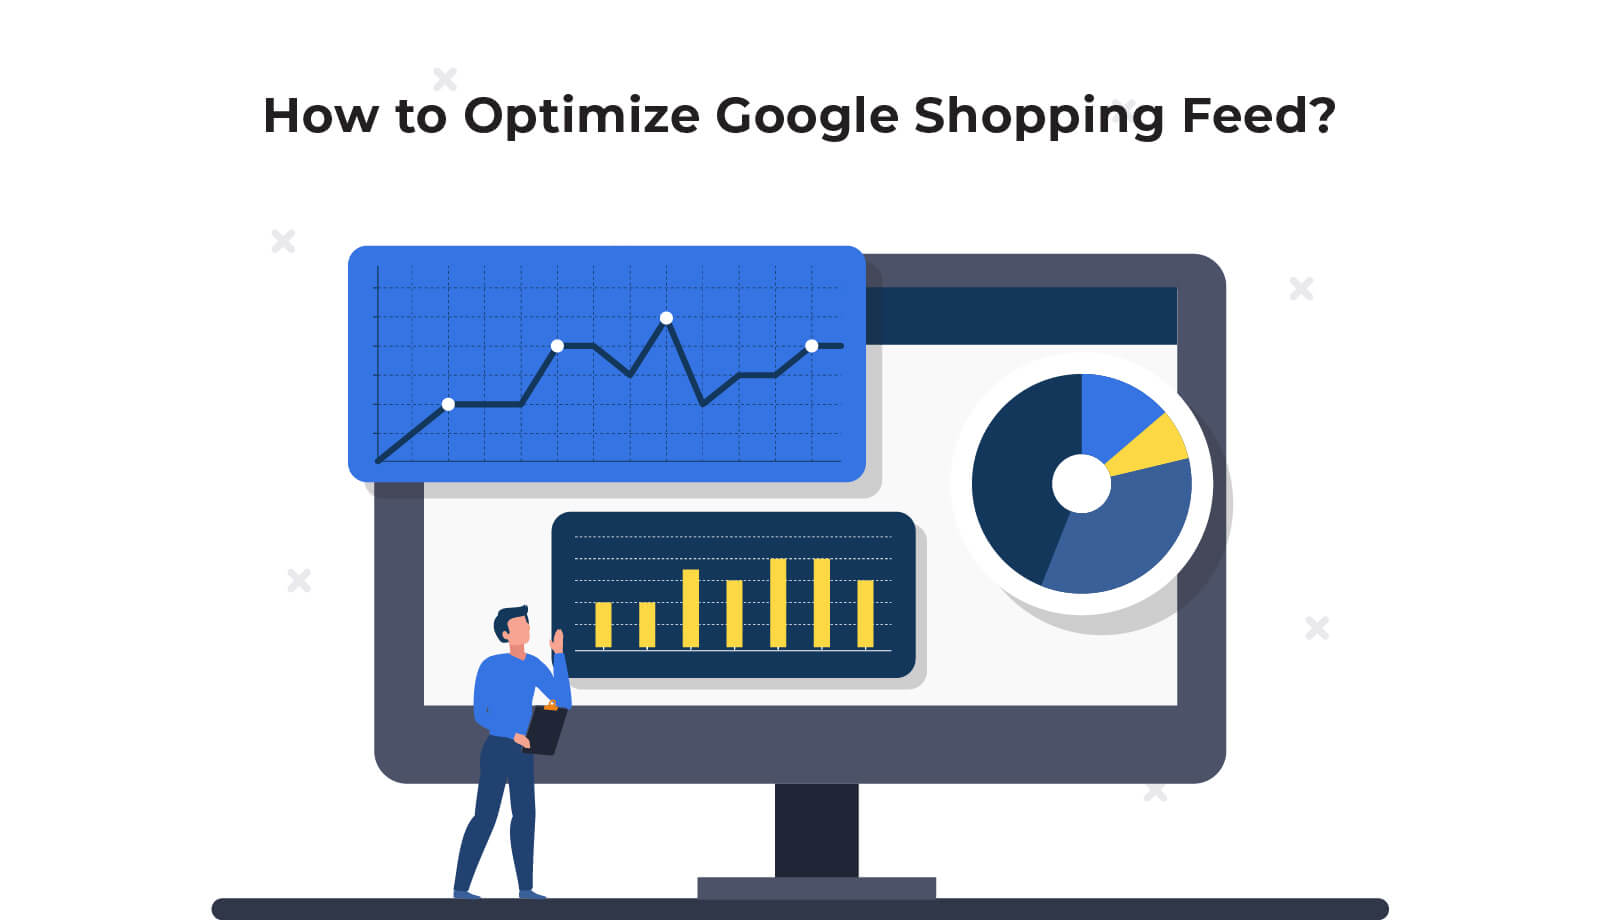 How to Optimize Google Shopping Feed